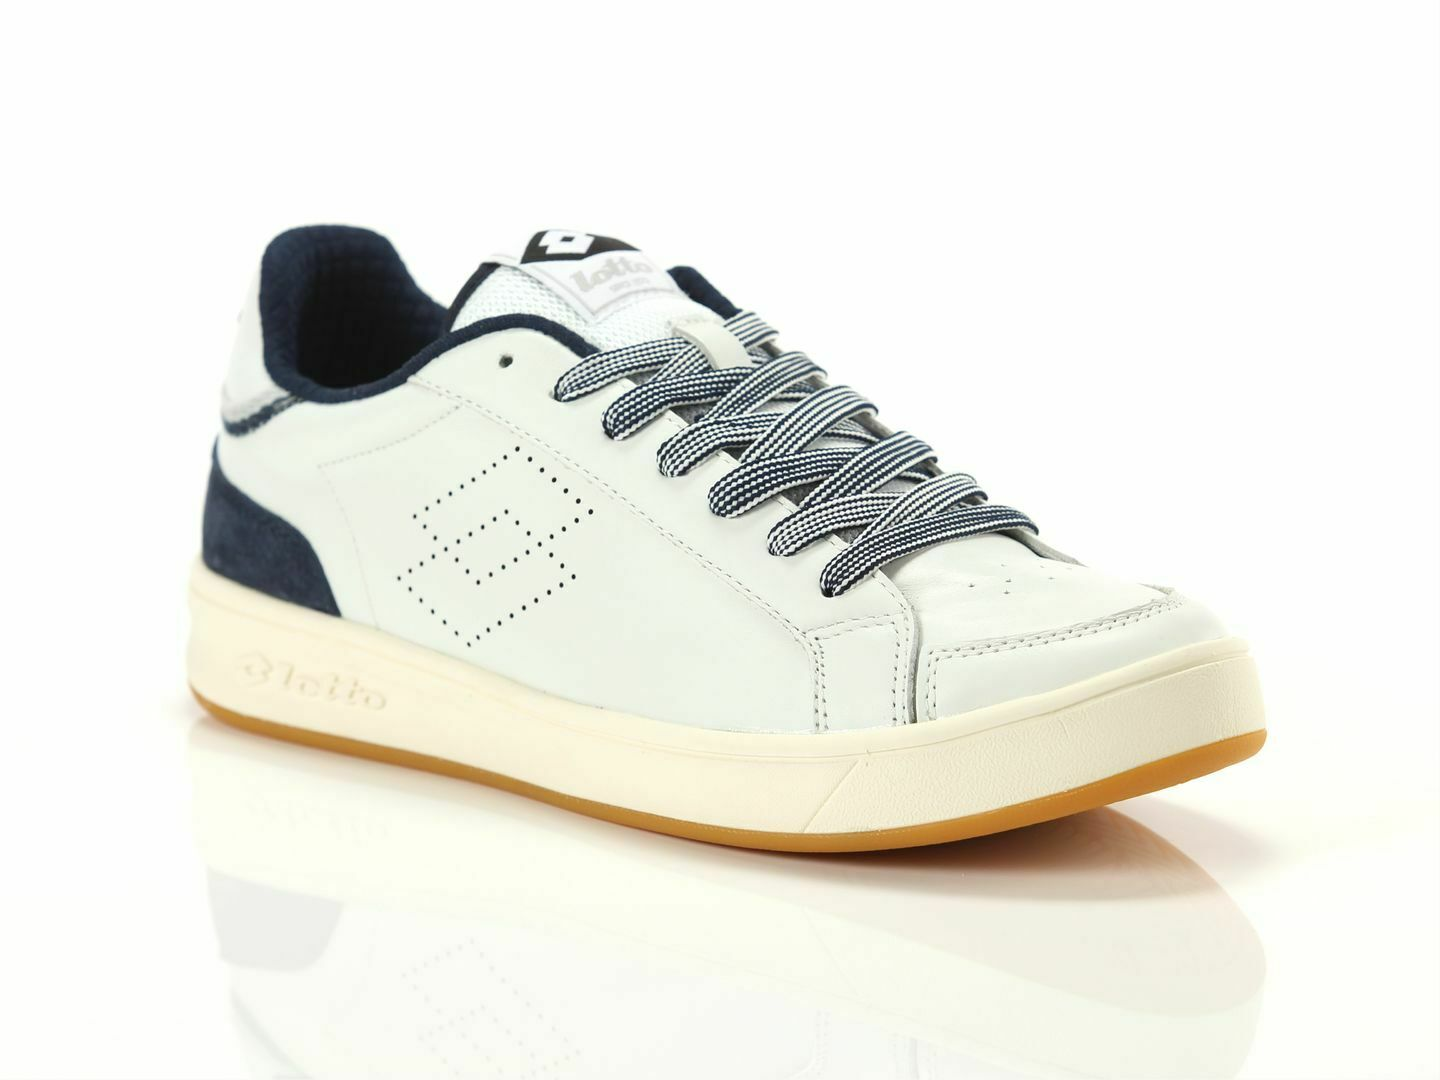 shoes Lotto Leggenda 211235 10U Pro Signature Man White dress bluee sneakers